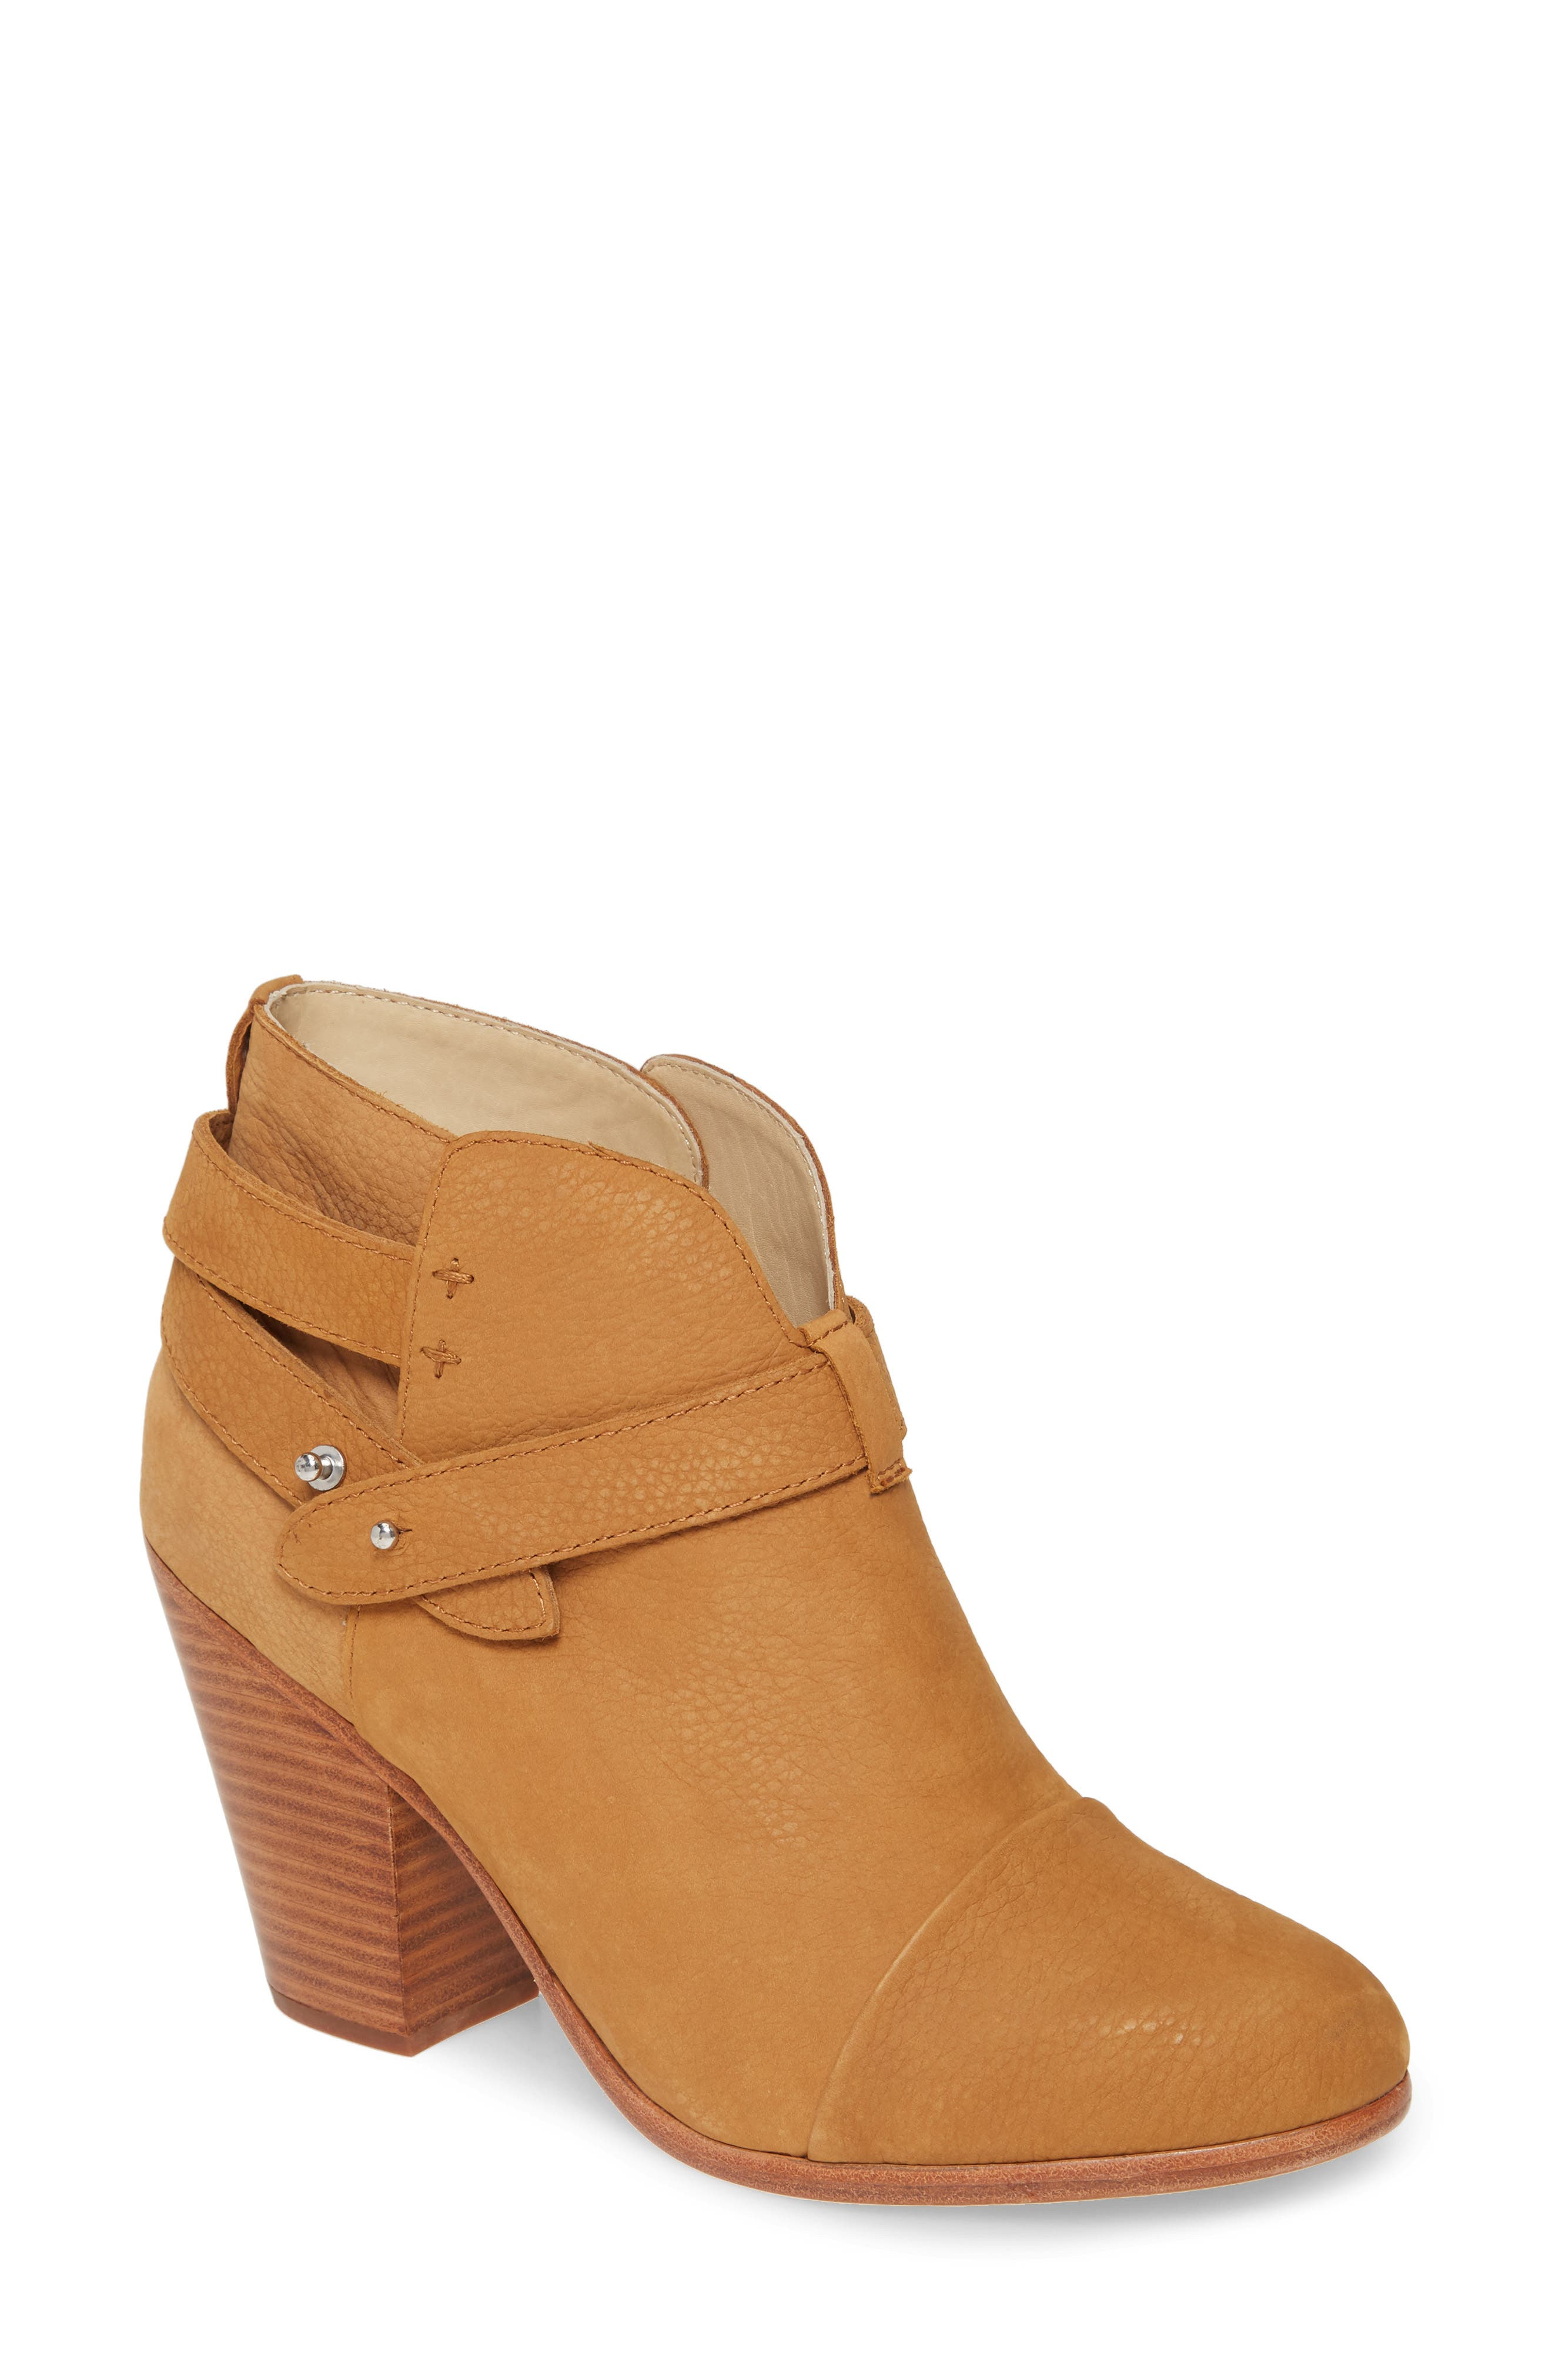 a2ff9a46c08 Women's Booties & Ankle Boots | Nordstrom